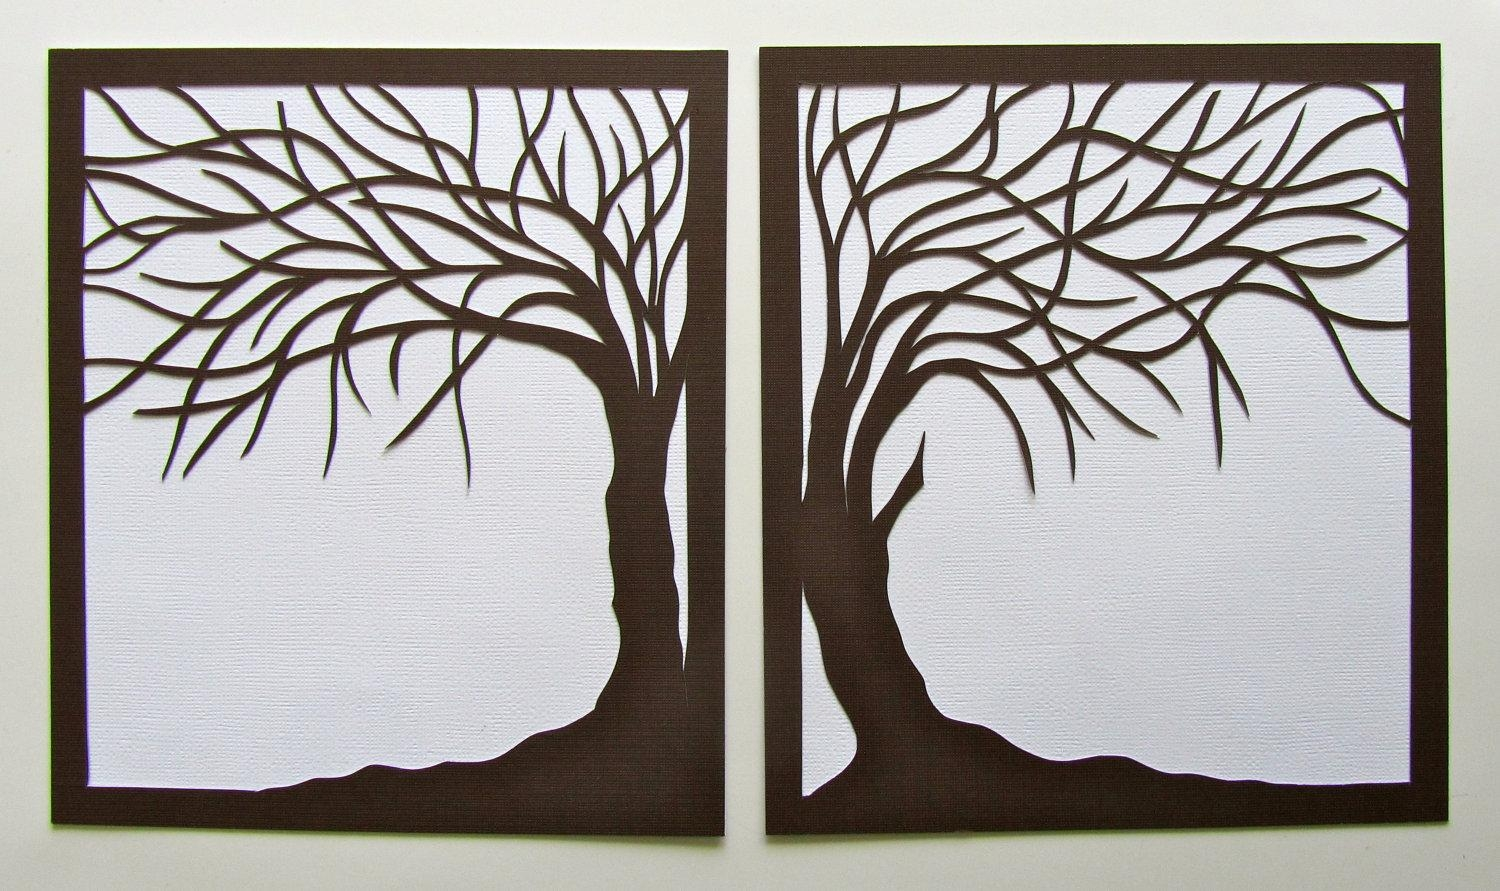 2 Trees Of Life Silhouette Paper Cut In Brown Over White inside Celtic Tree of Life Wall Art